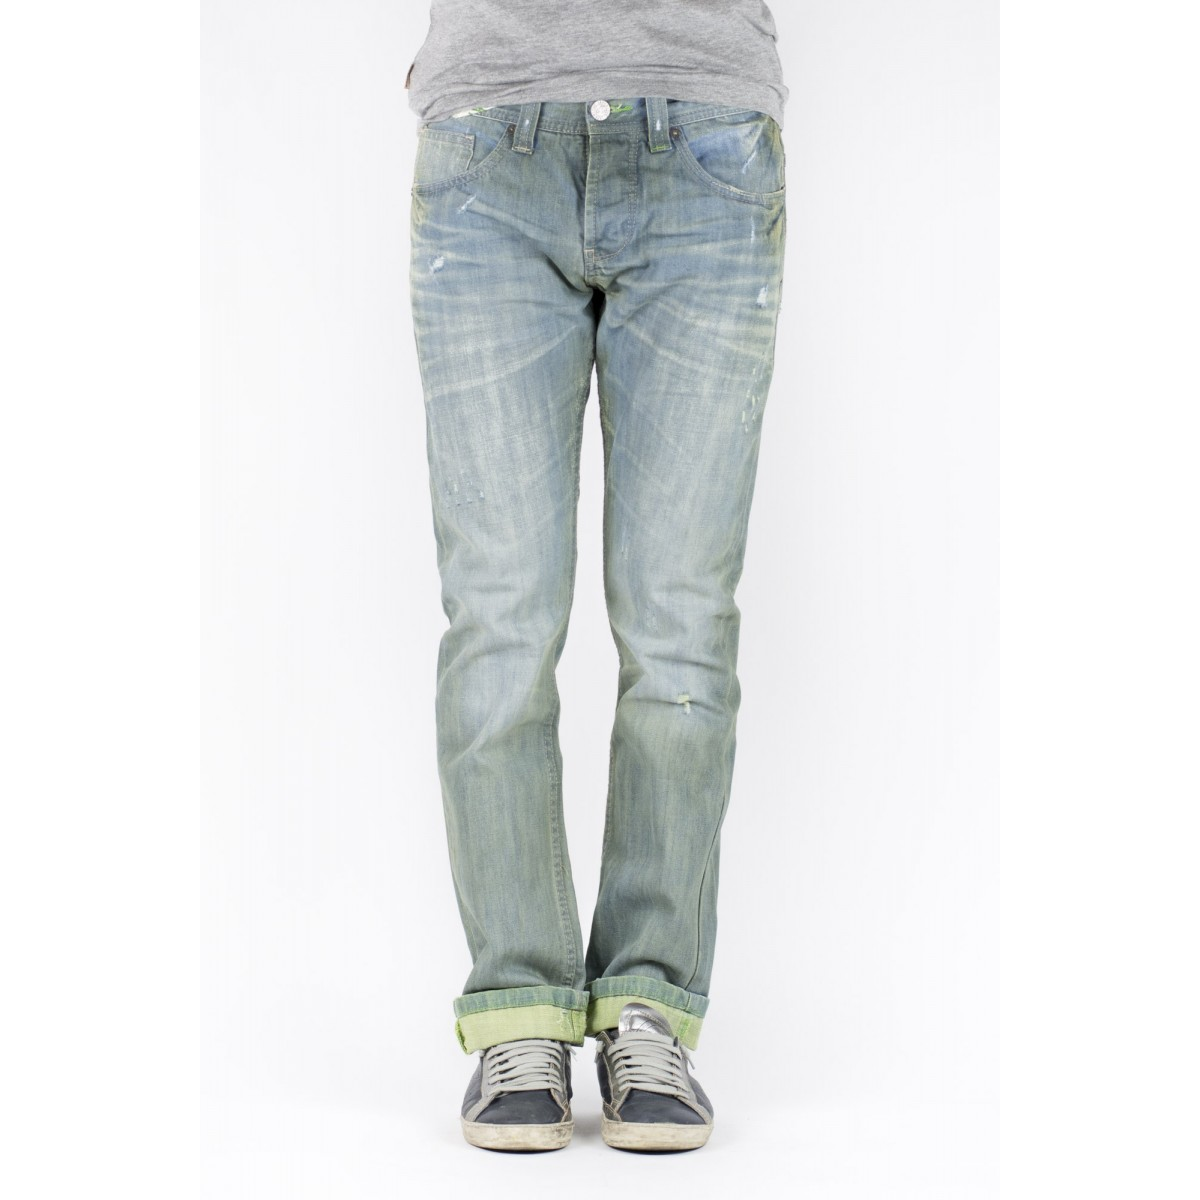 Jeans One Green Elephant Man - Chico 02351